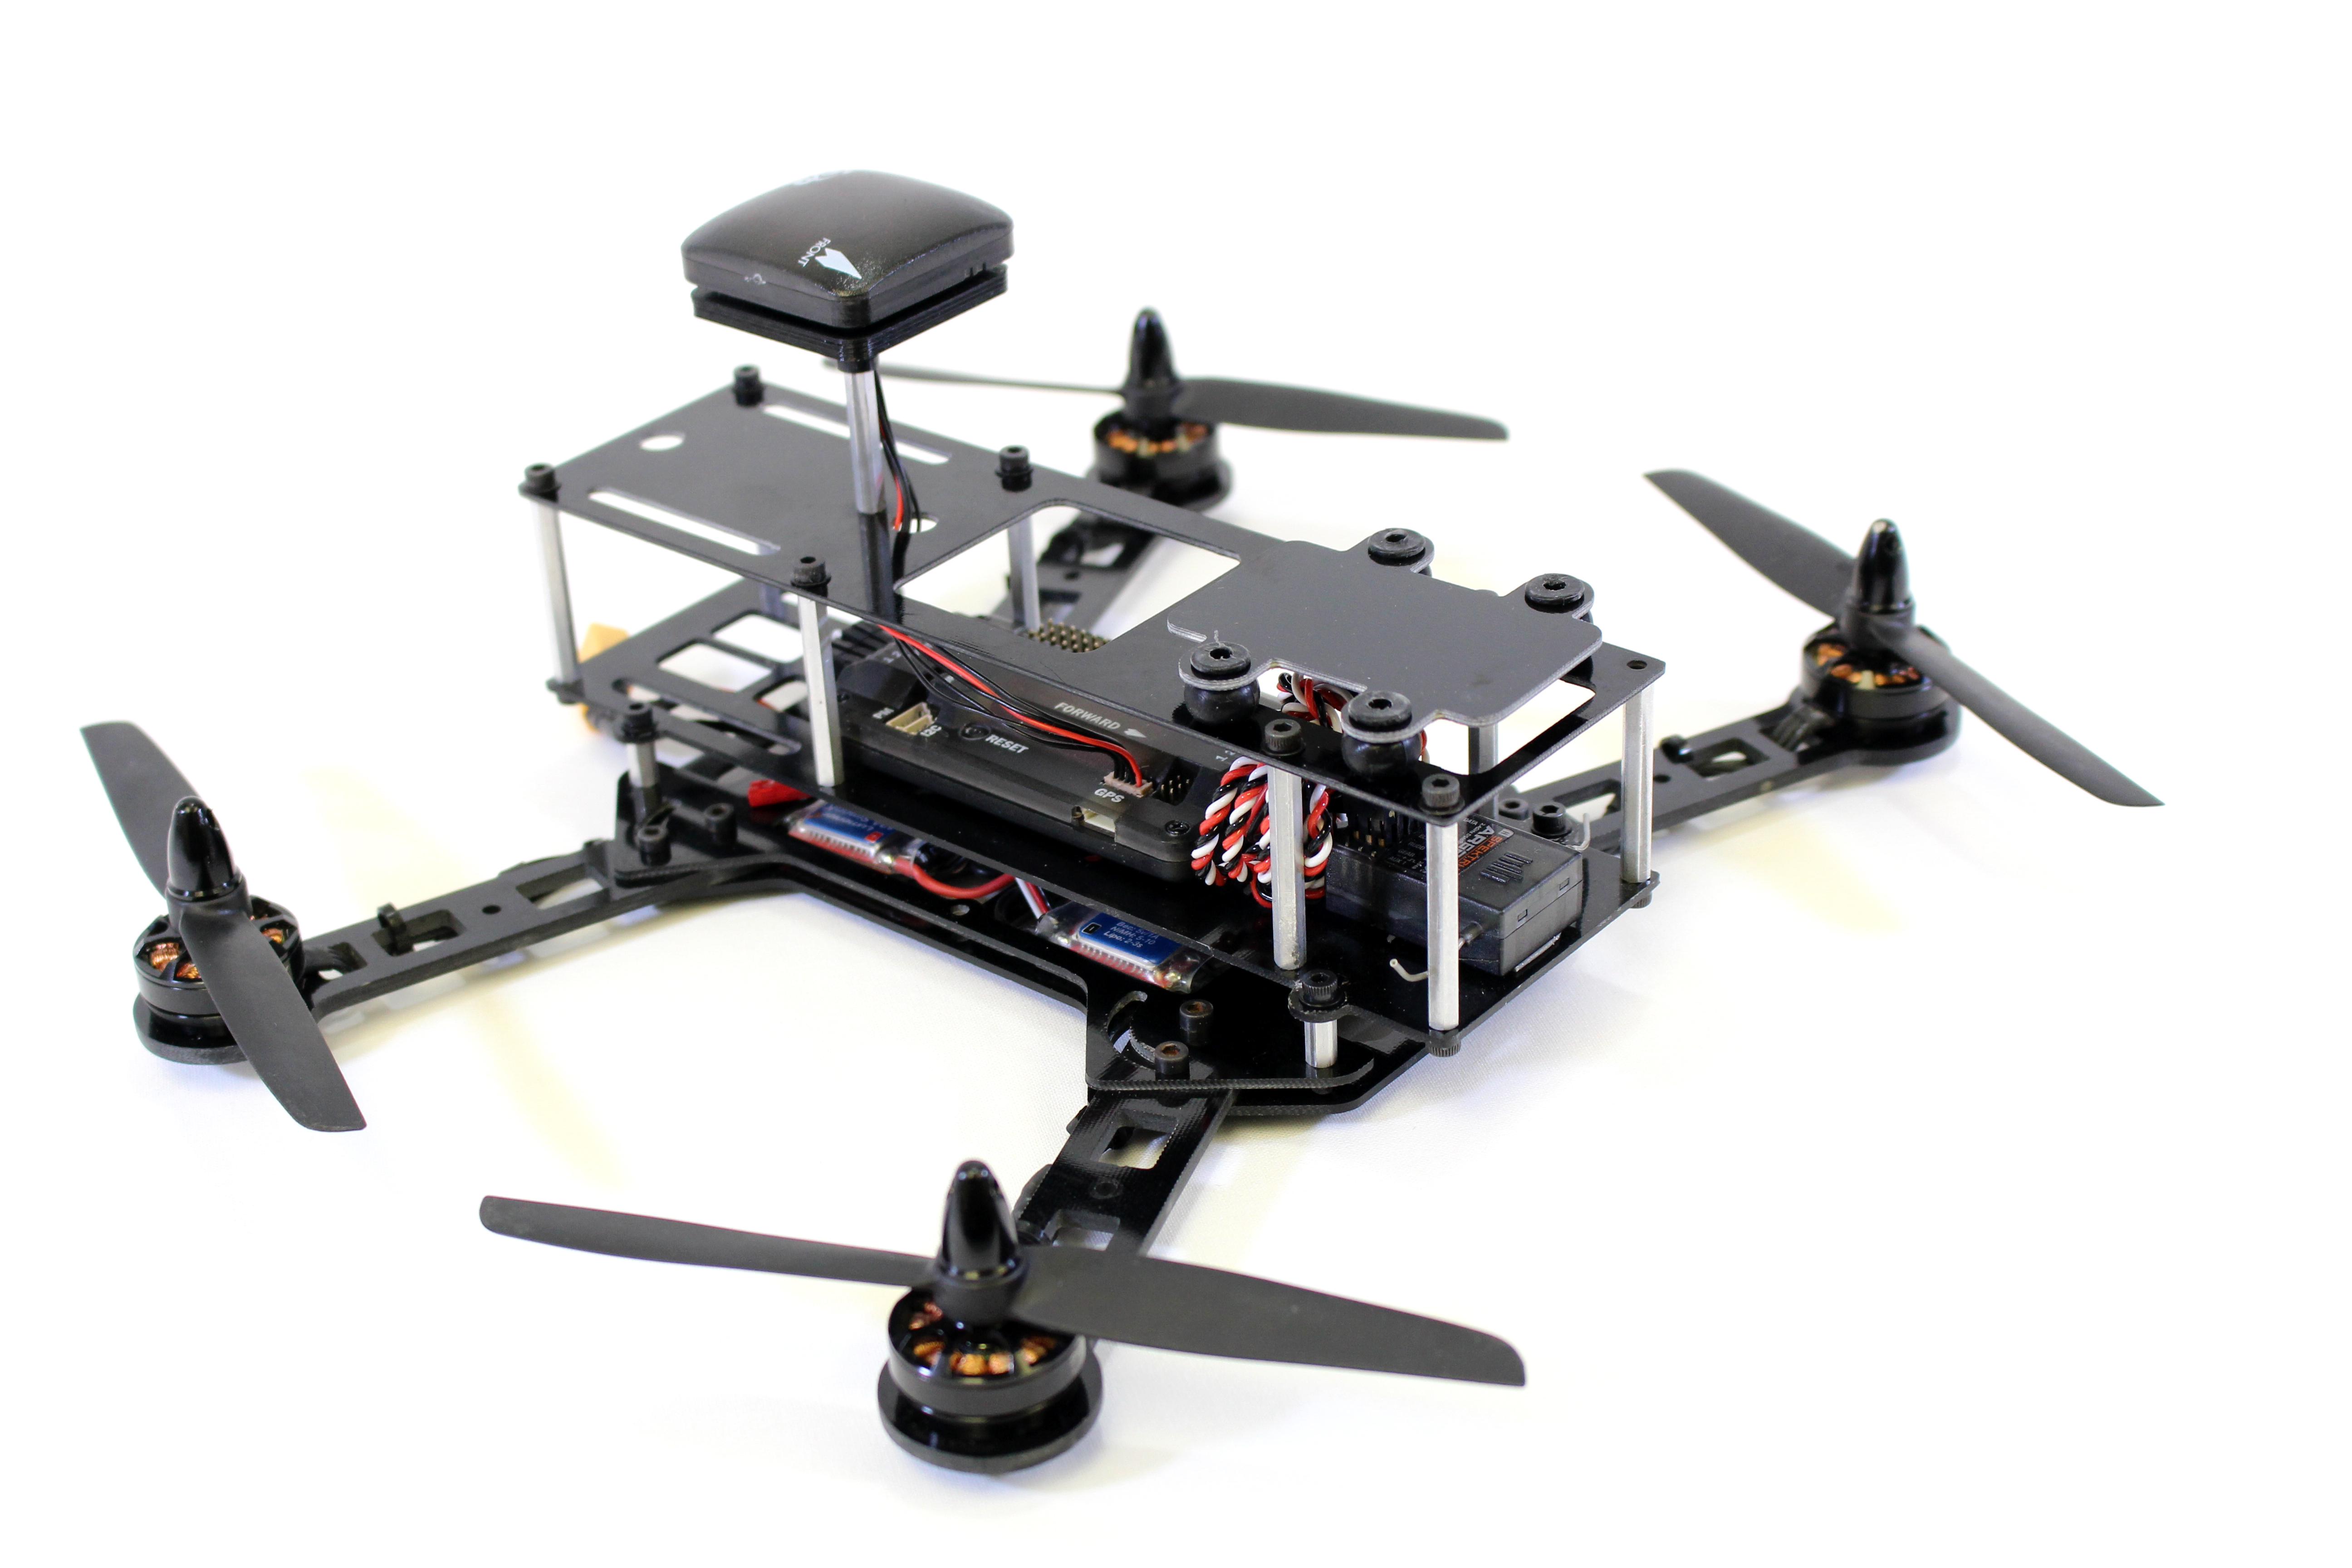 Build an FPV-Style Quadcopter with a 3D Printed Frame | Make: